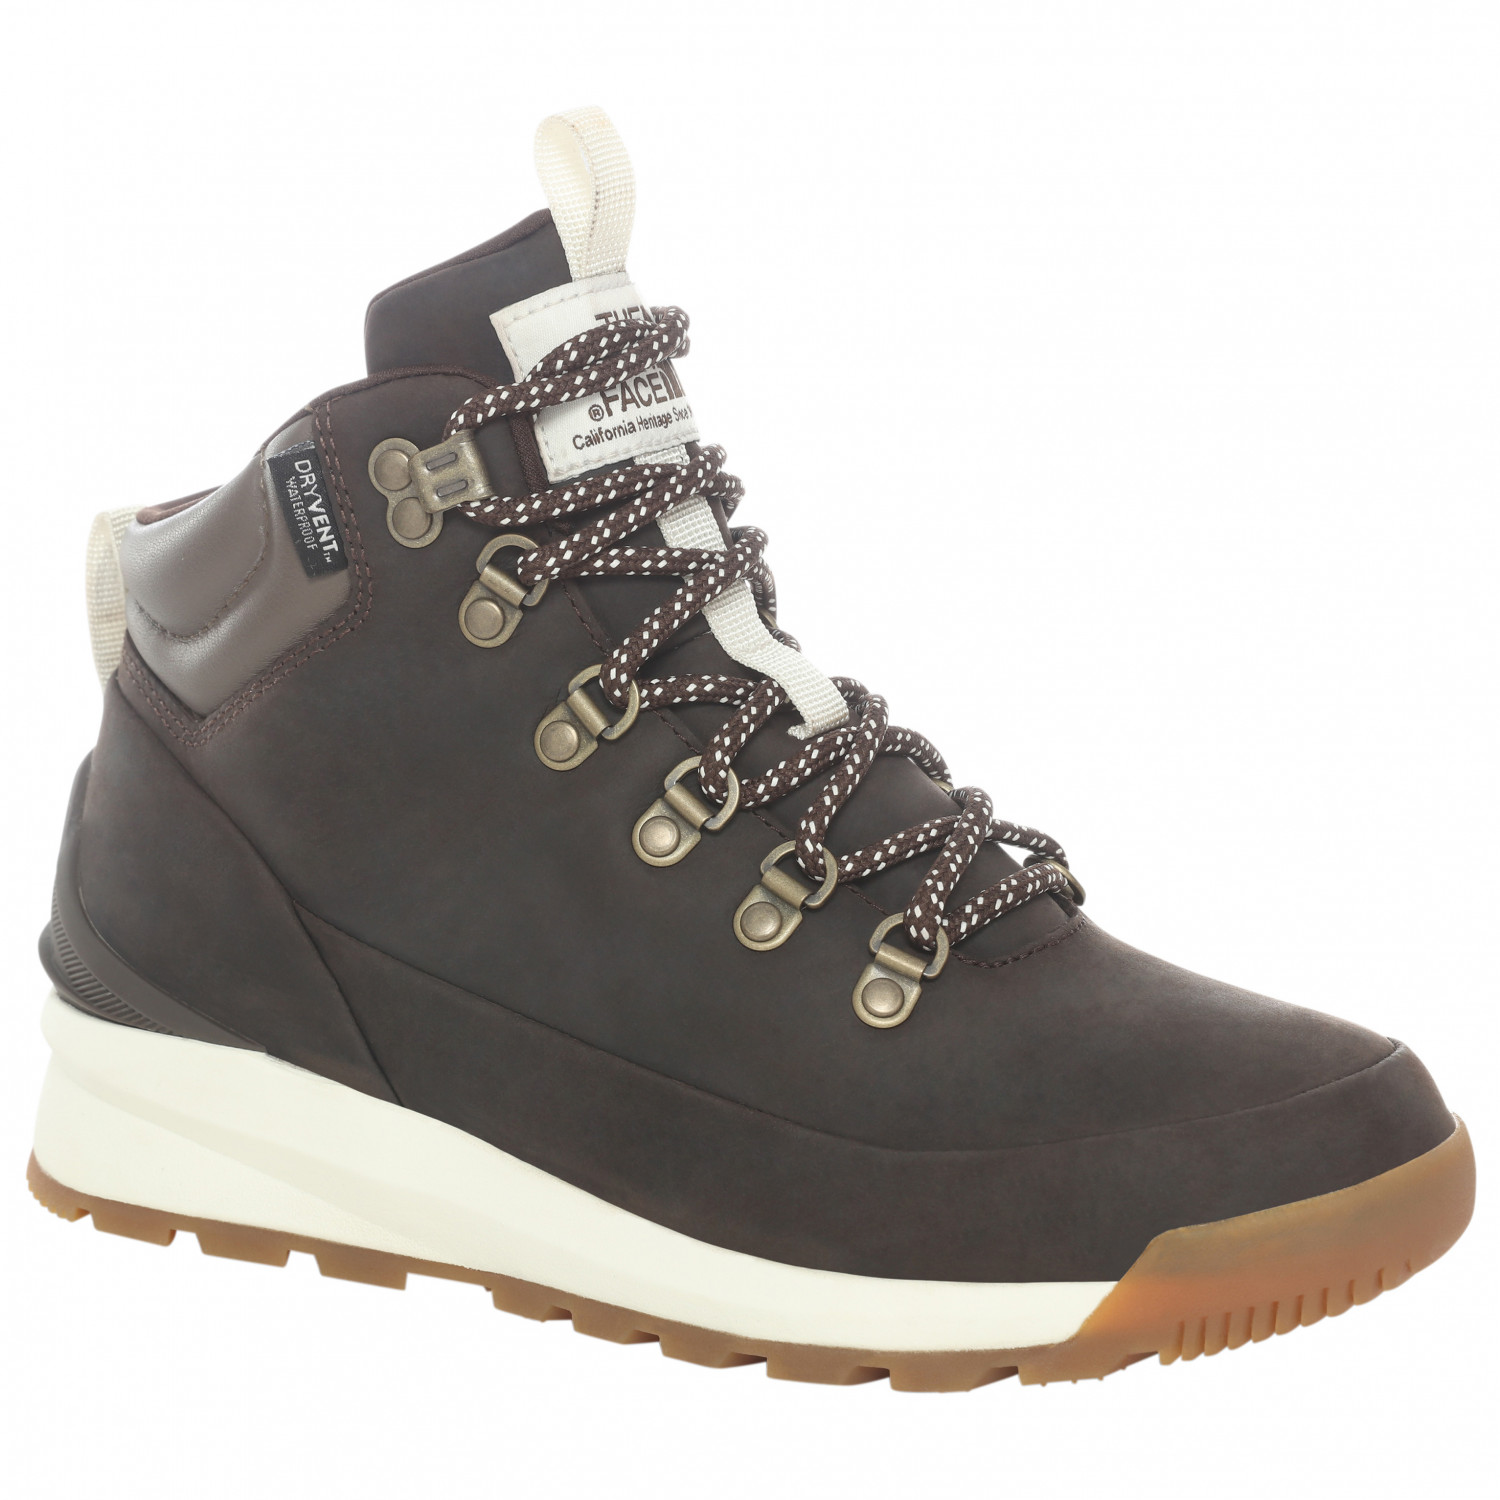 The North Face Back-To-Berkeley Mid